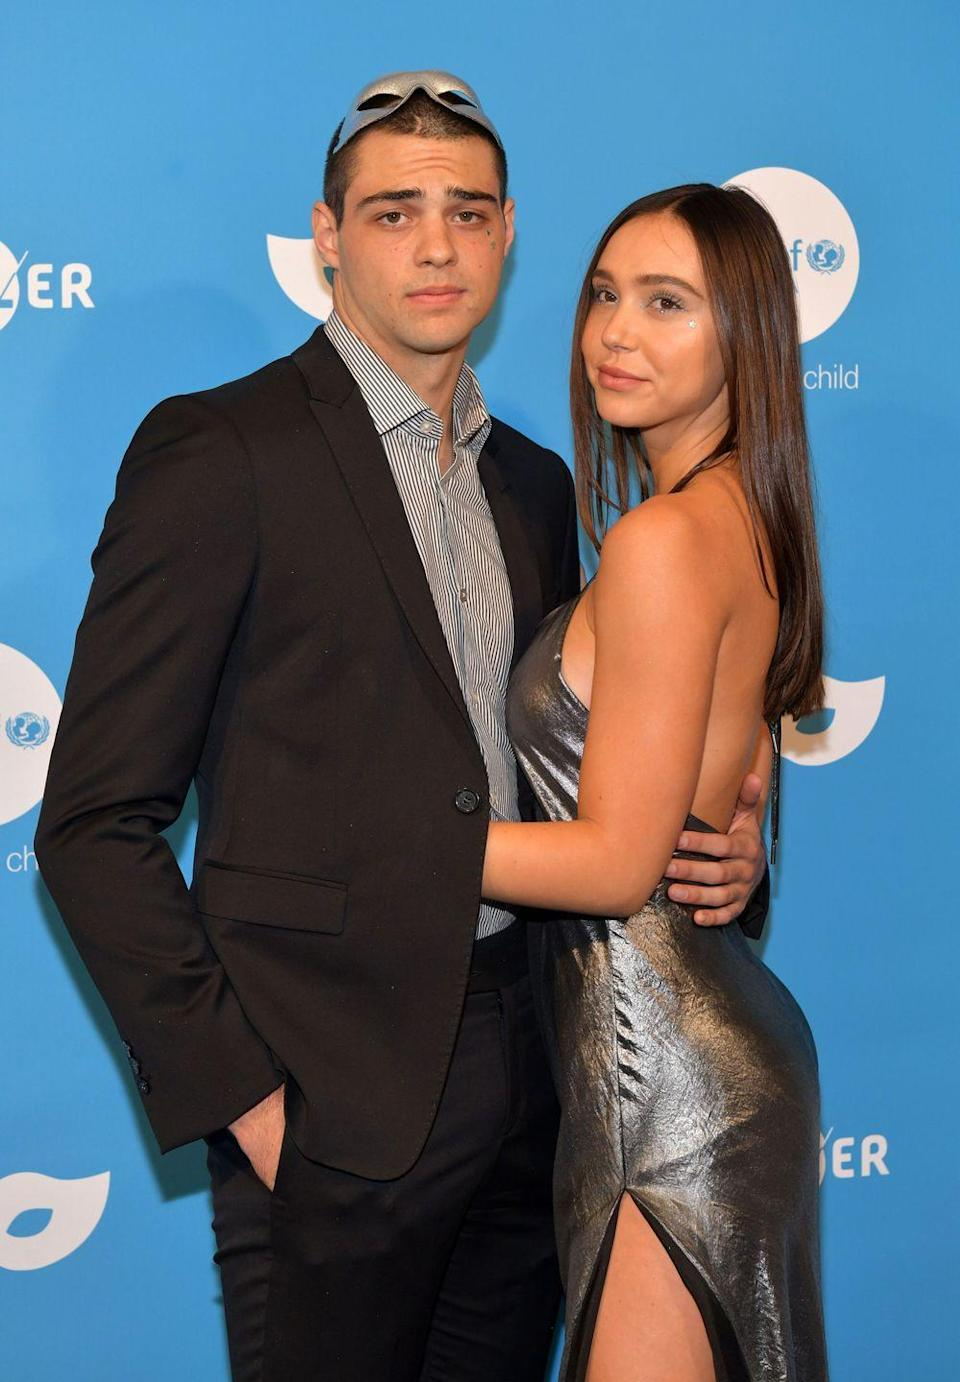 """<p>Noah and Alexis first sparked dating rumors wayyy back in September 2019 when they did commoner activities together like picking up each other from airports, eating at restaurants, and shopping at Whole Foods together. The couple went Instagram official in January 2020, <a href=""""https://www.dailymail.co.uk/tvshowbiz/article-8254911/Noah-Centineo-Alexis-Ren-ended-relatipnship-one-year.html"""" rel=""""nofollow noopener"""" target=""""_blank"""" data-ylk=""""slk:but they ended their relationship just three months later in April"""" class=""""link rapid-noclick-resp"""">but they ended their relationship just three months later in April</a>, as evidenced by them deleting pics of each other from social media and unfollowing each other on Instagram. </p>"""